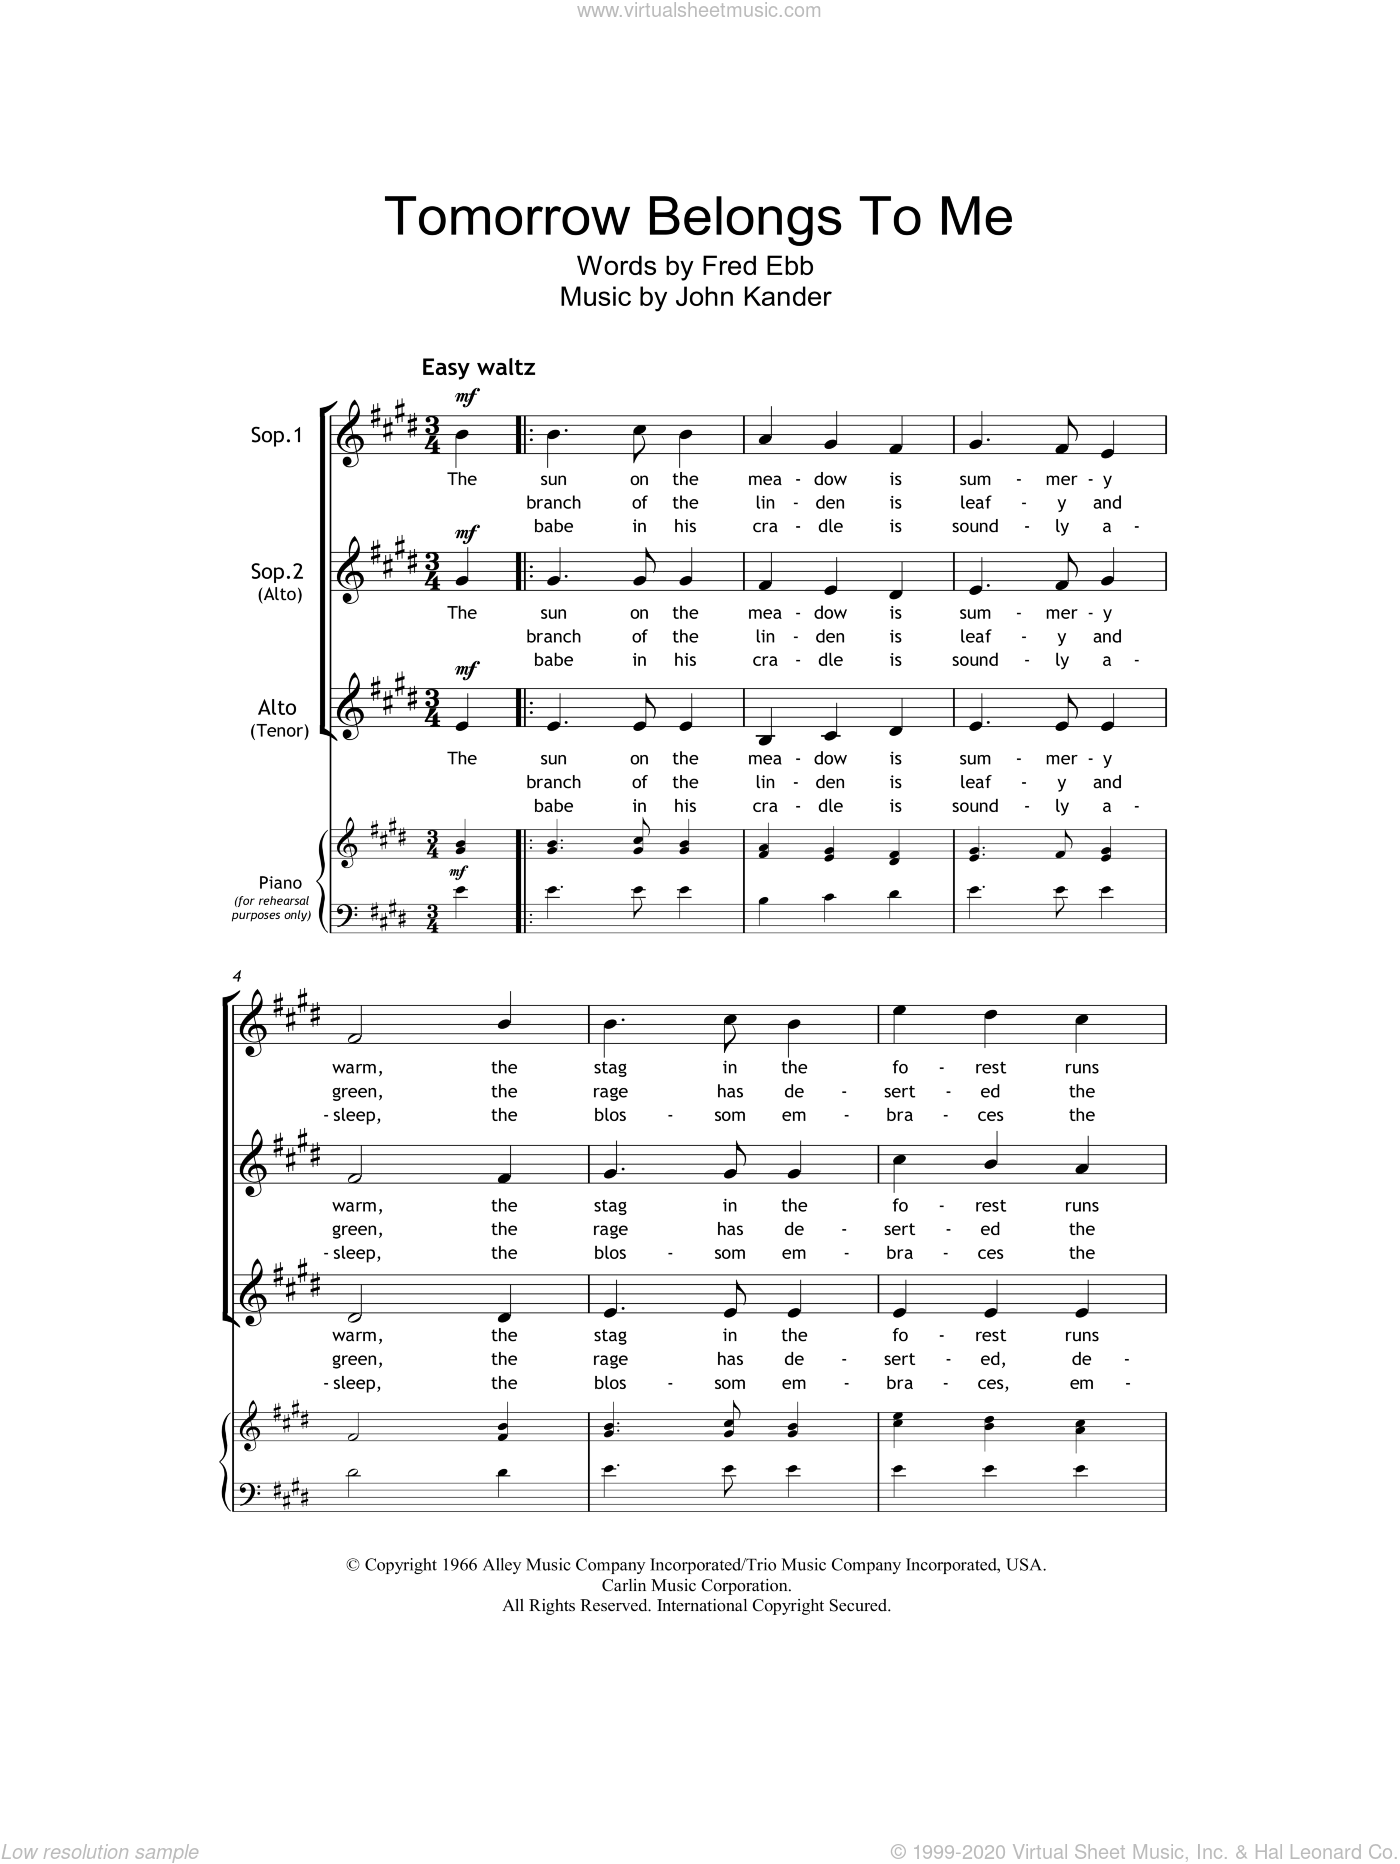 Tomorrow Belongs To Me (from Cabaret) sheet music for choir and piano (SSA) by Fred Ebb, Kander & Ebb and John Kander. Score Image Preview.